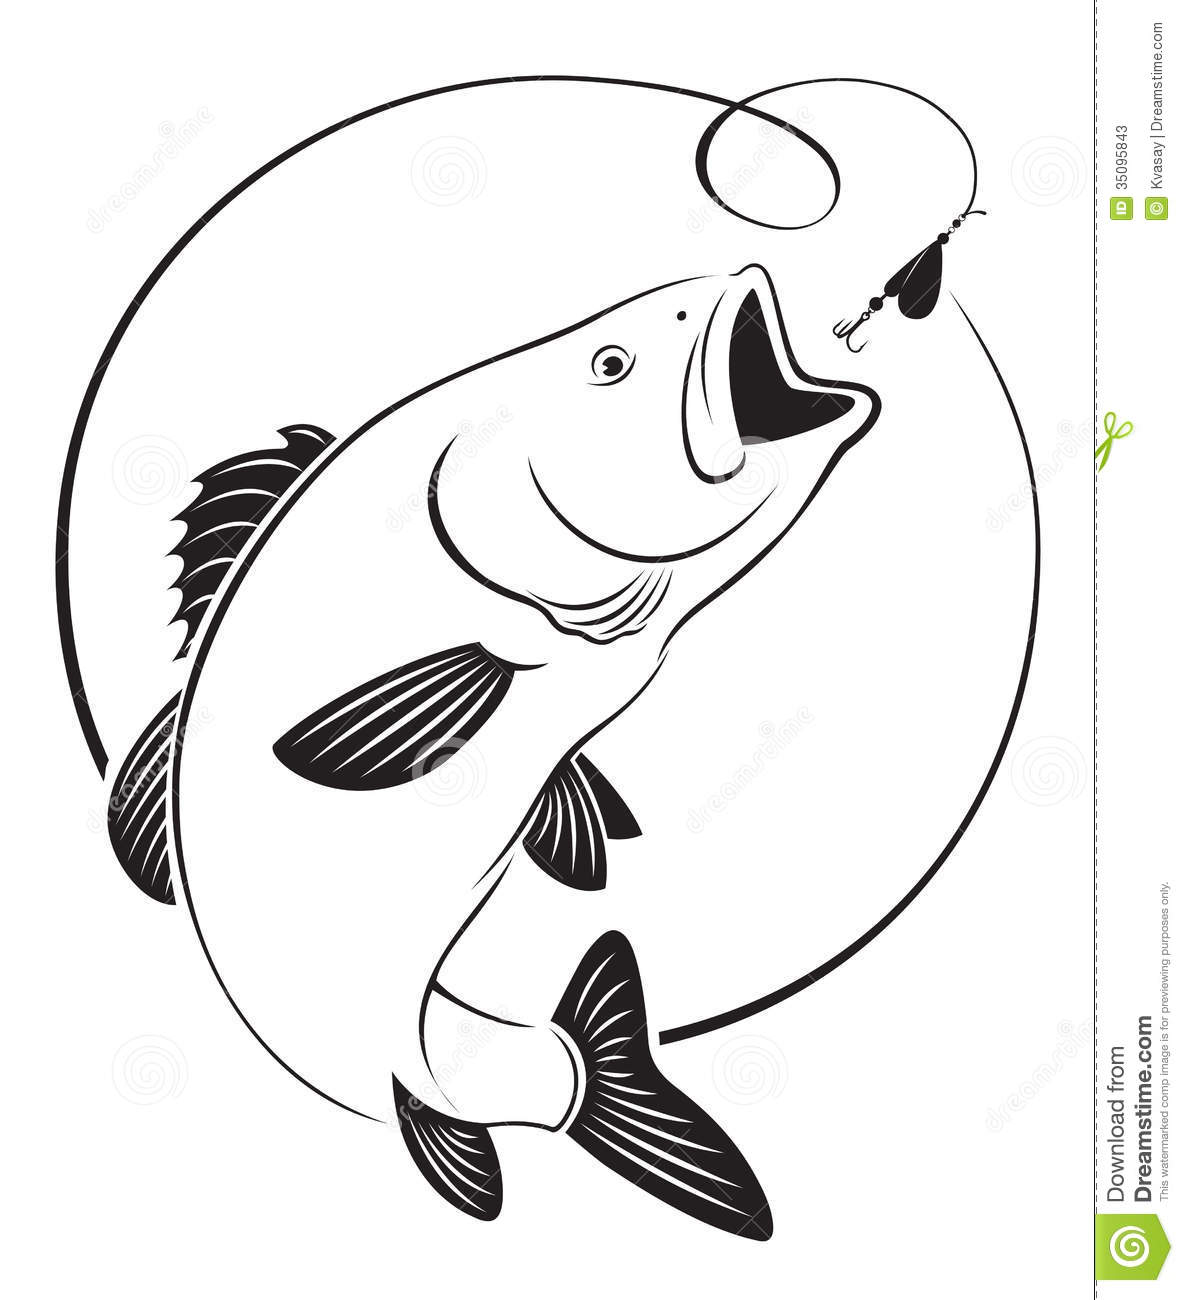 41 Bass Fish Clipart